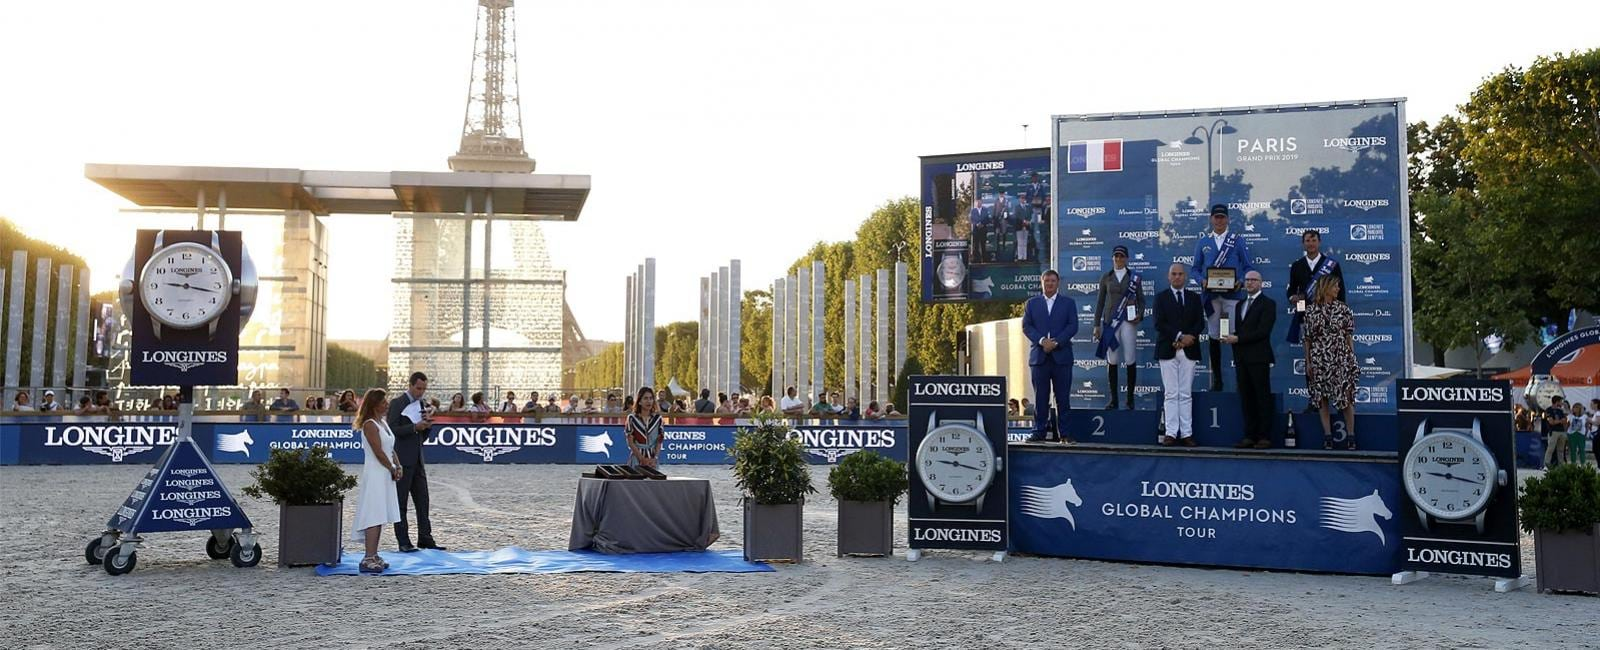 Longines Global Champions Tour von Paris; Springreiten; 2019